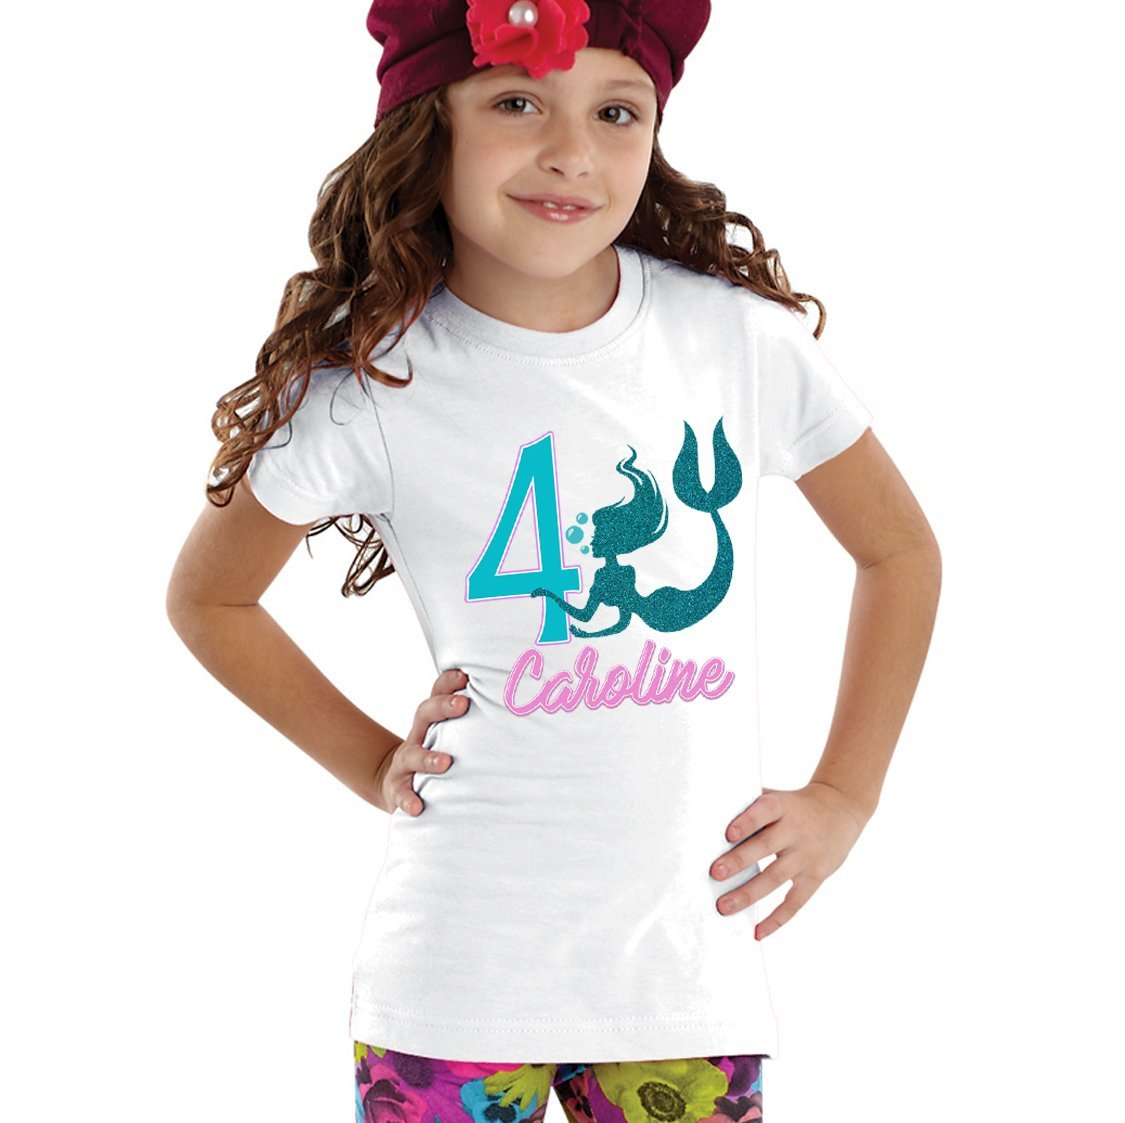 NanyCrafts' Personalized Mermaid Birthday Glitter Girl's Shirt 5/6Y White